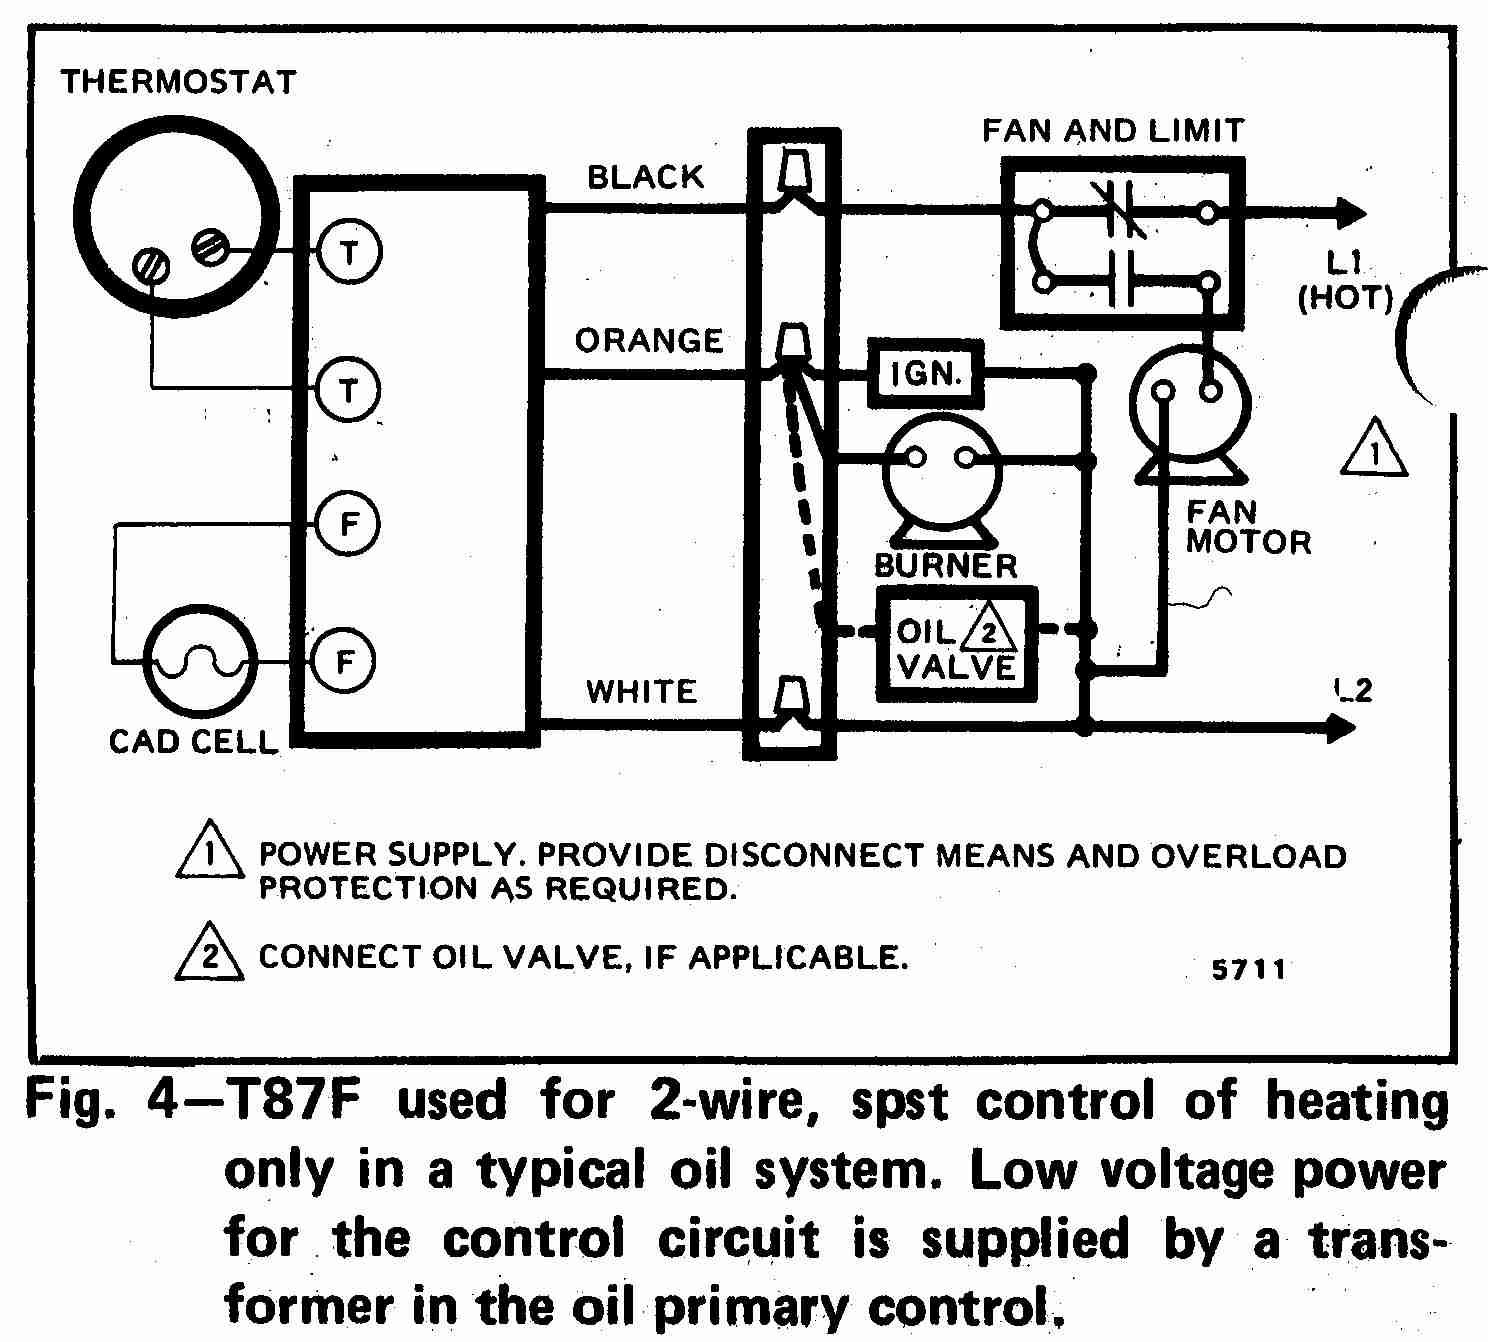 T87F Thermostat wiring diagram for 2 wire spst control of heating  #666666